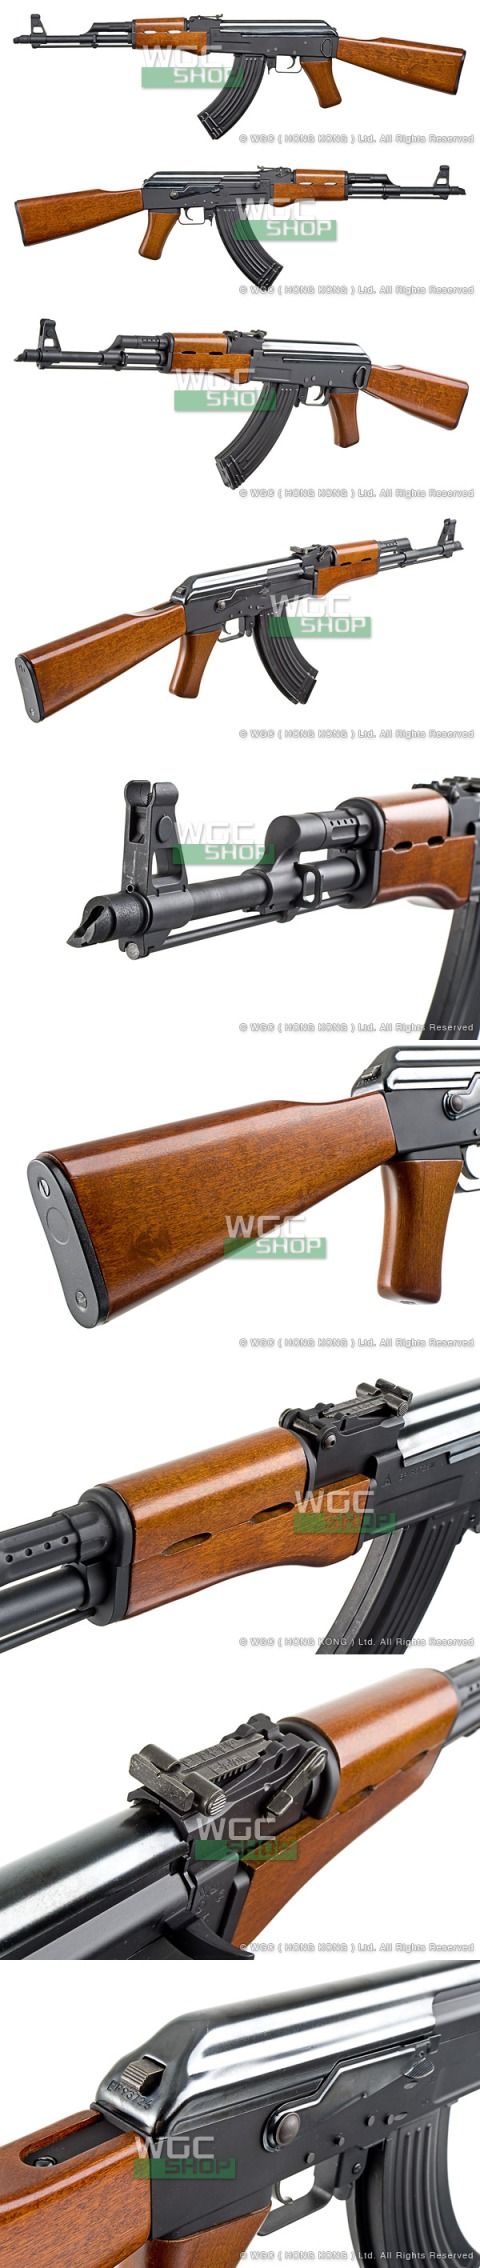 G&P AK47 wood stock